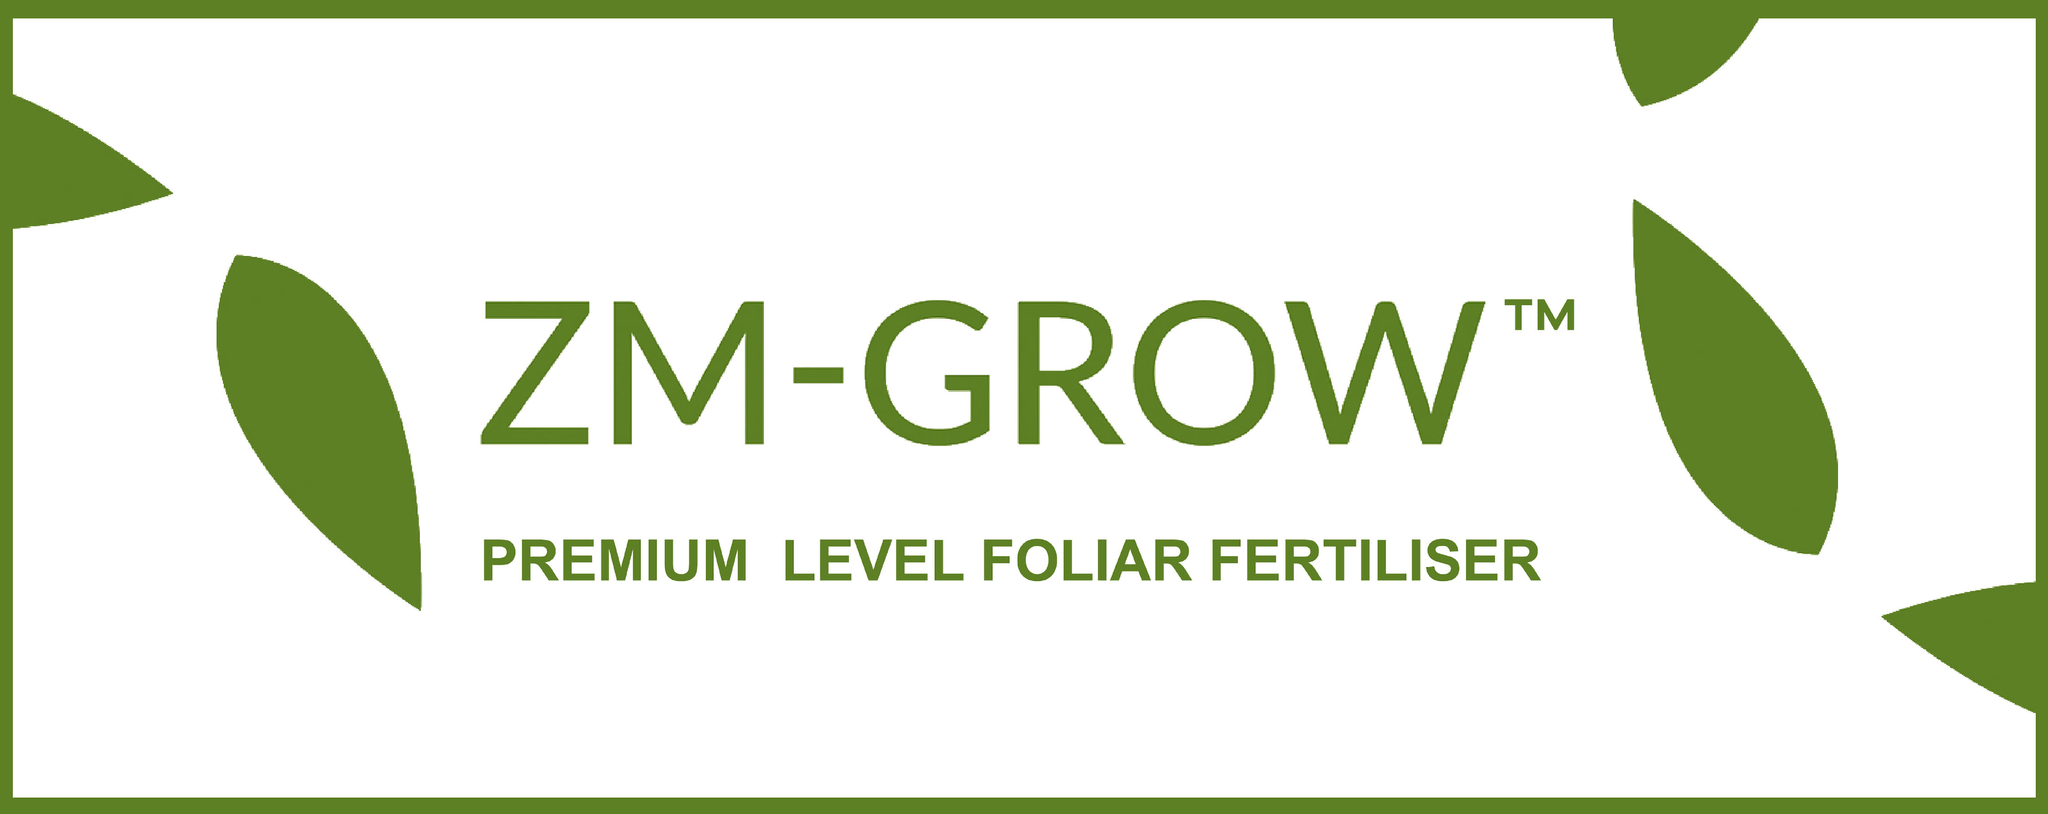 ZM-Grow and the Circular Economy